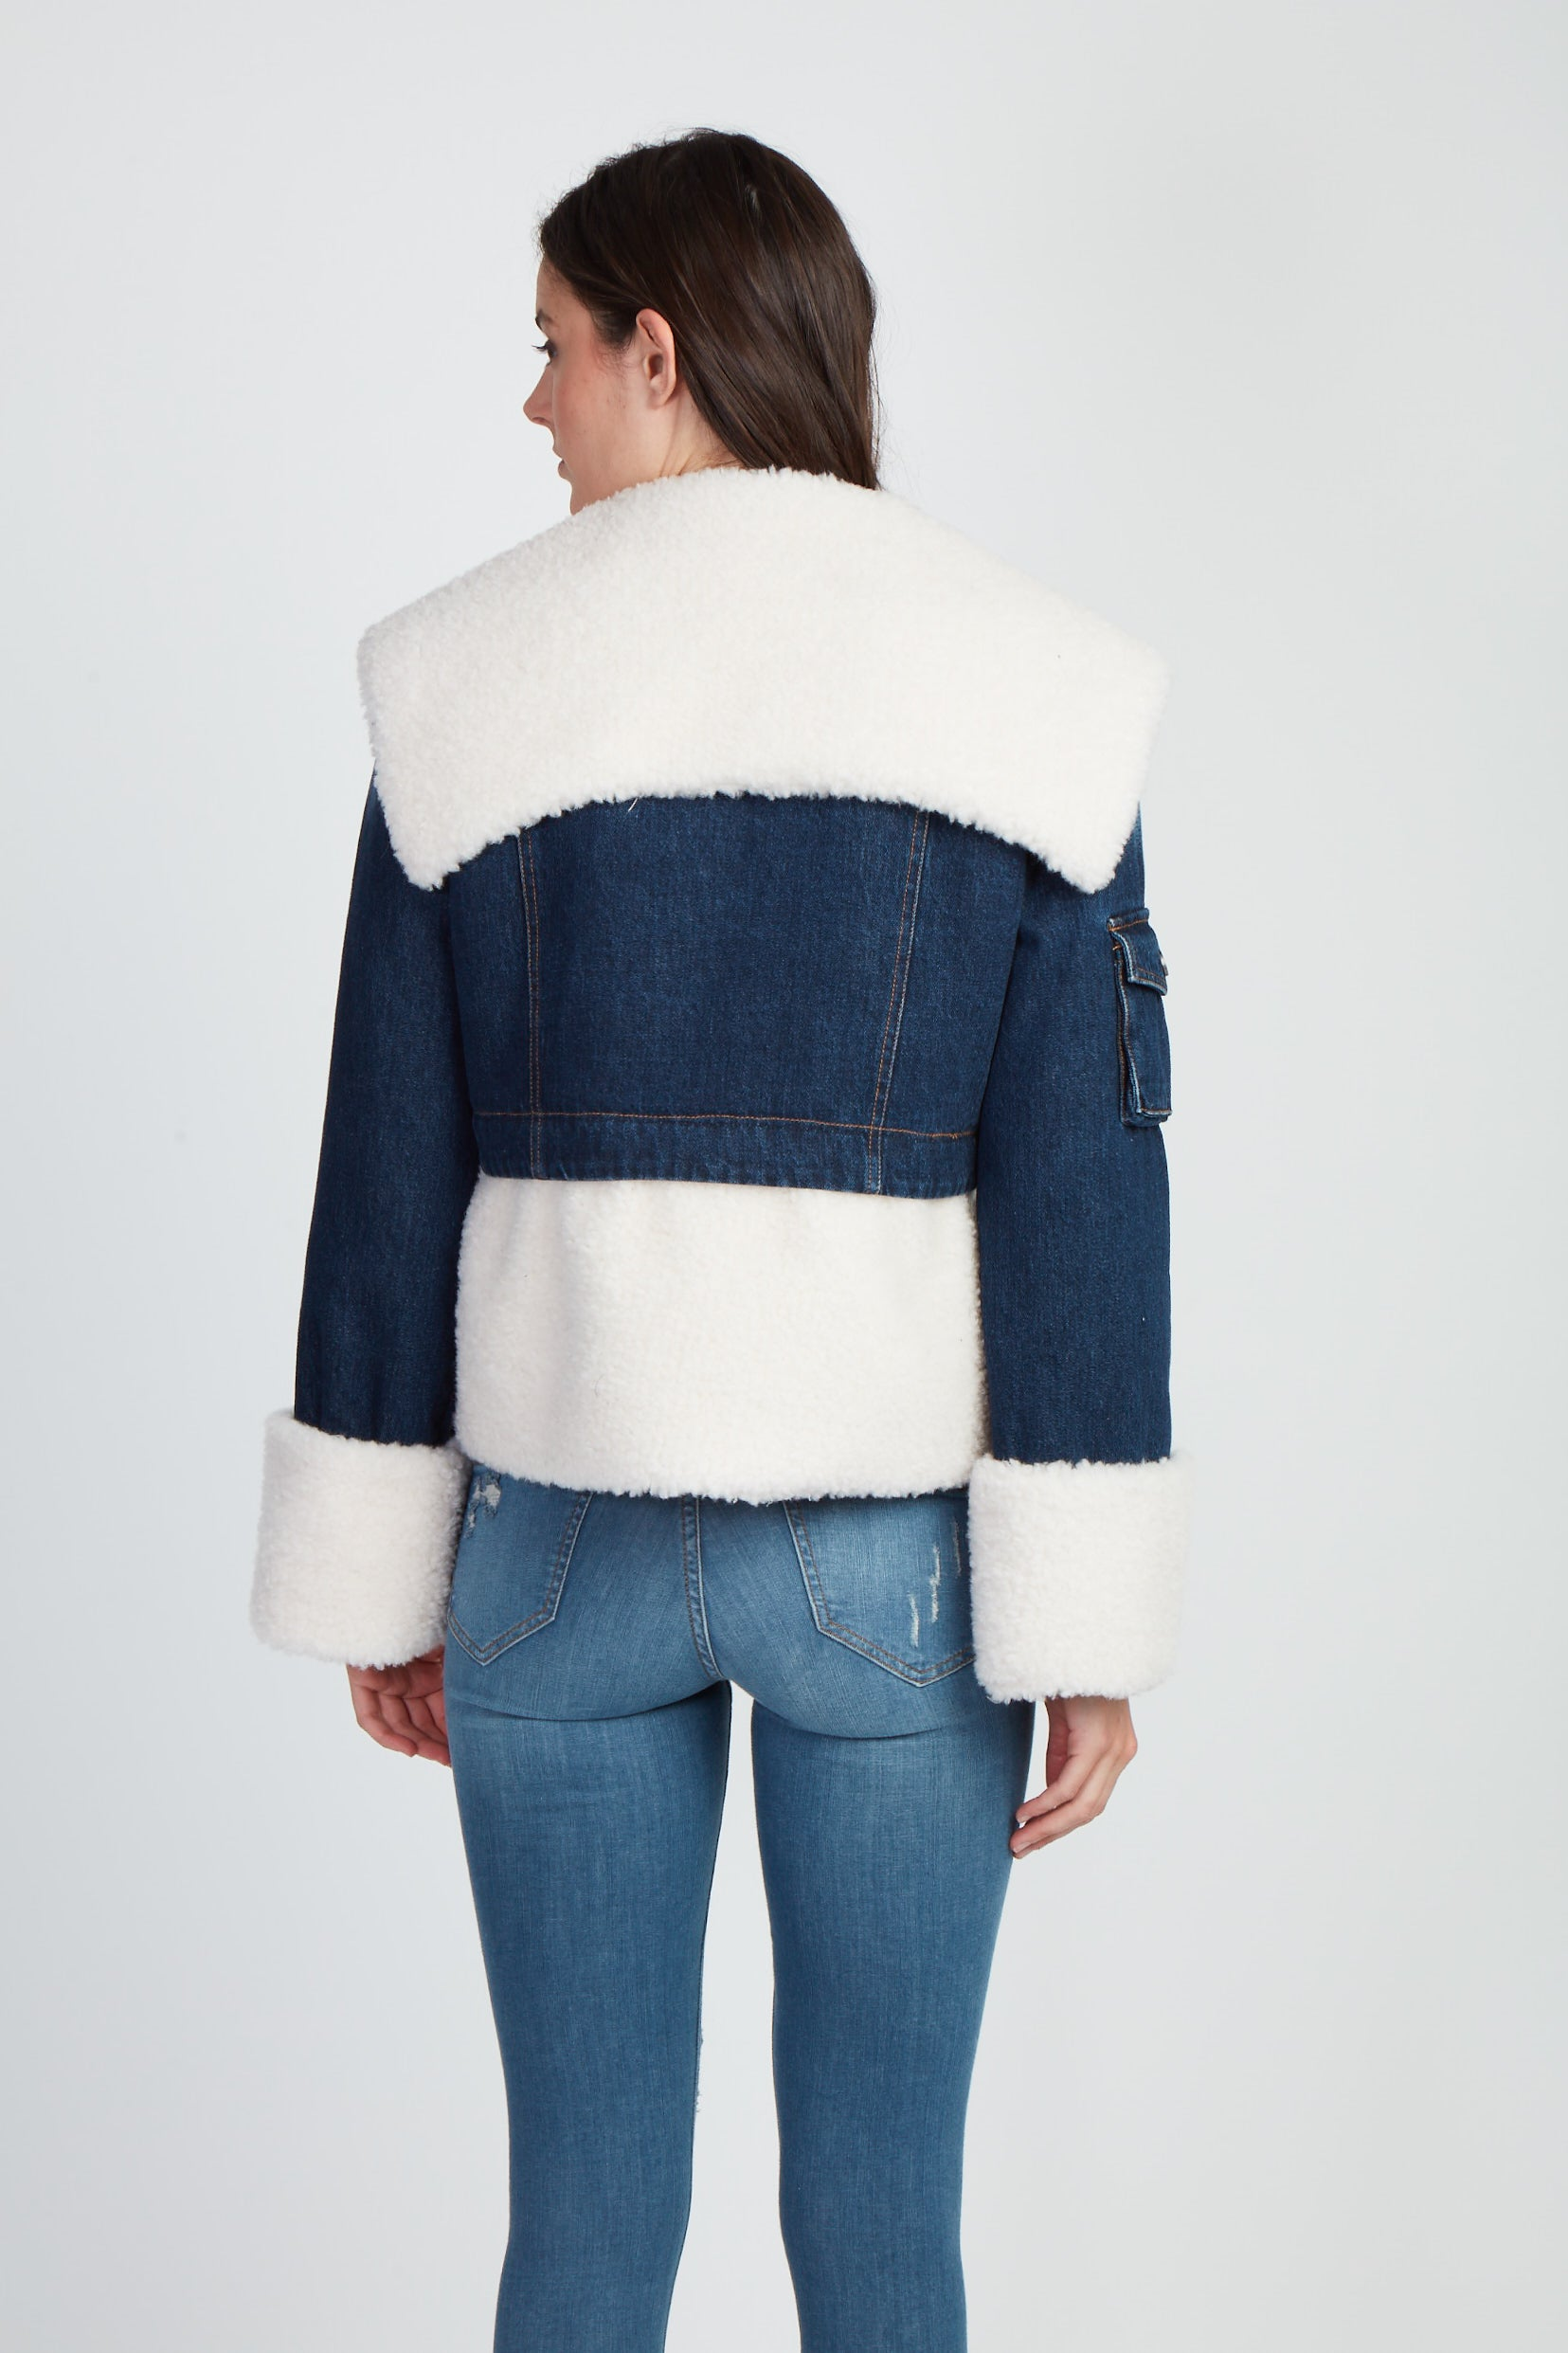 The You Can't Deny Me Denim & Faux Sherpa Jacket